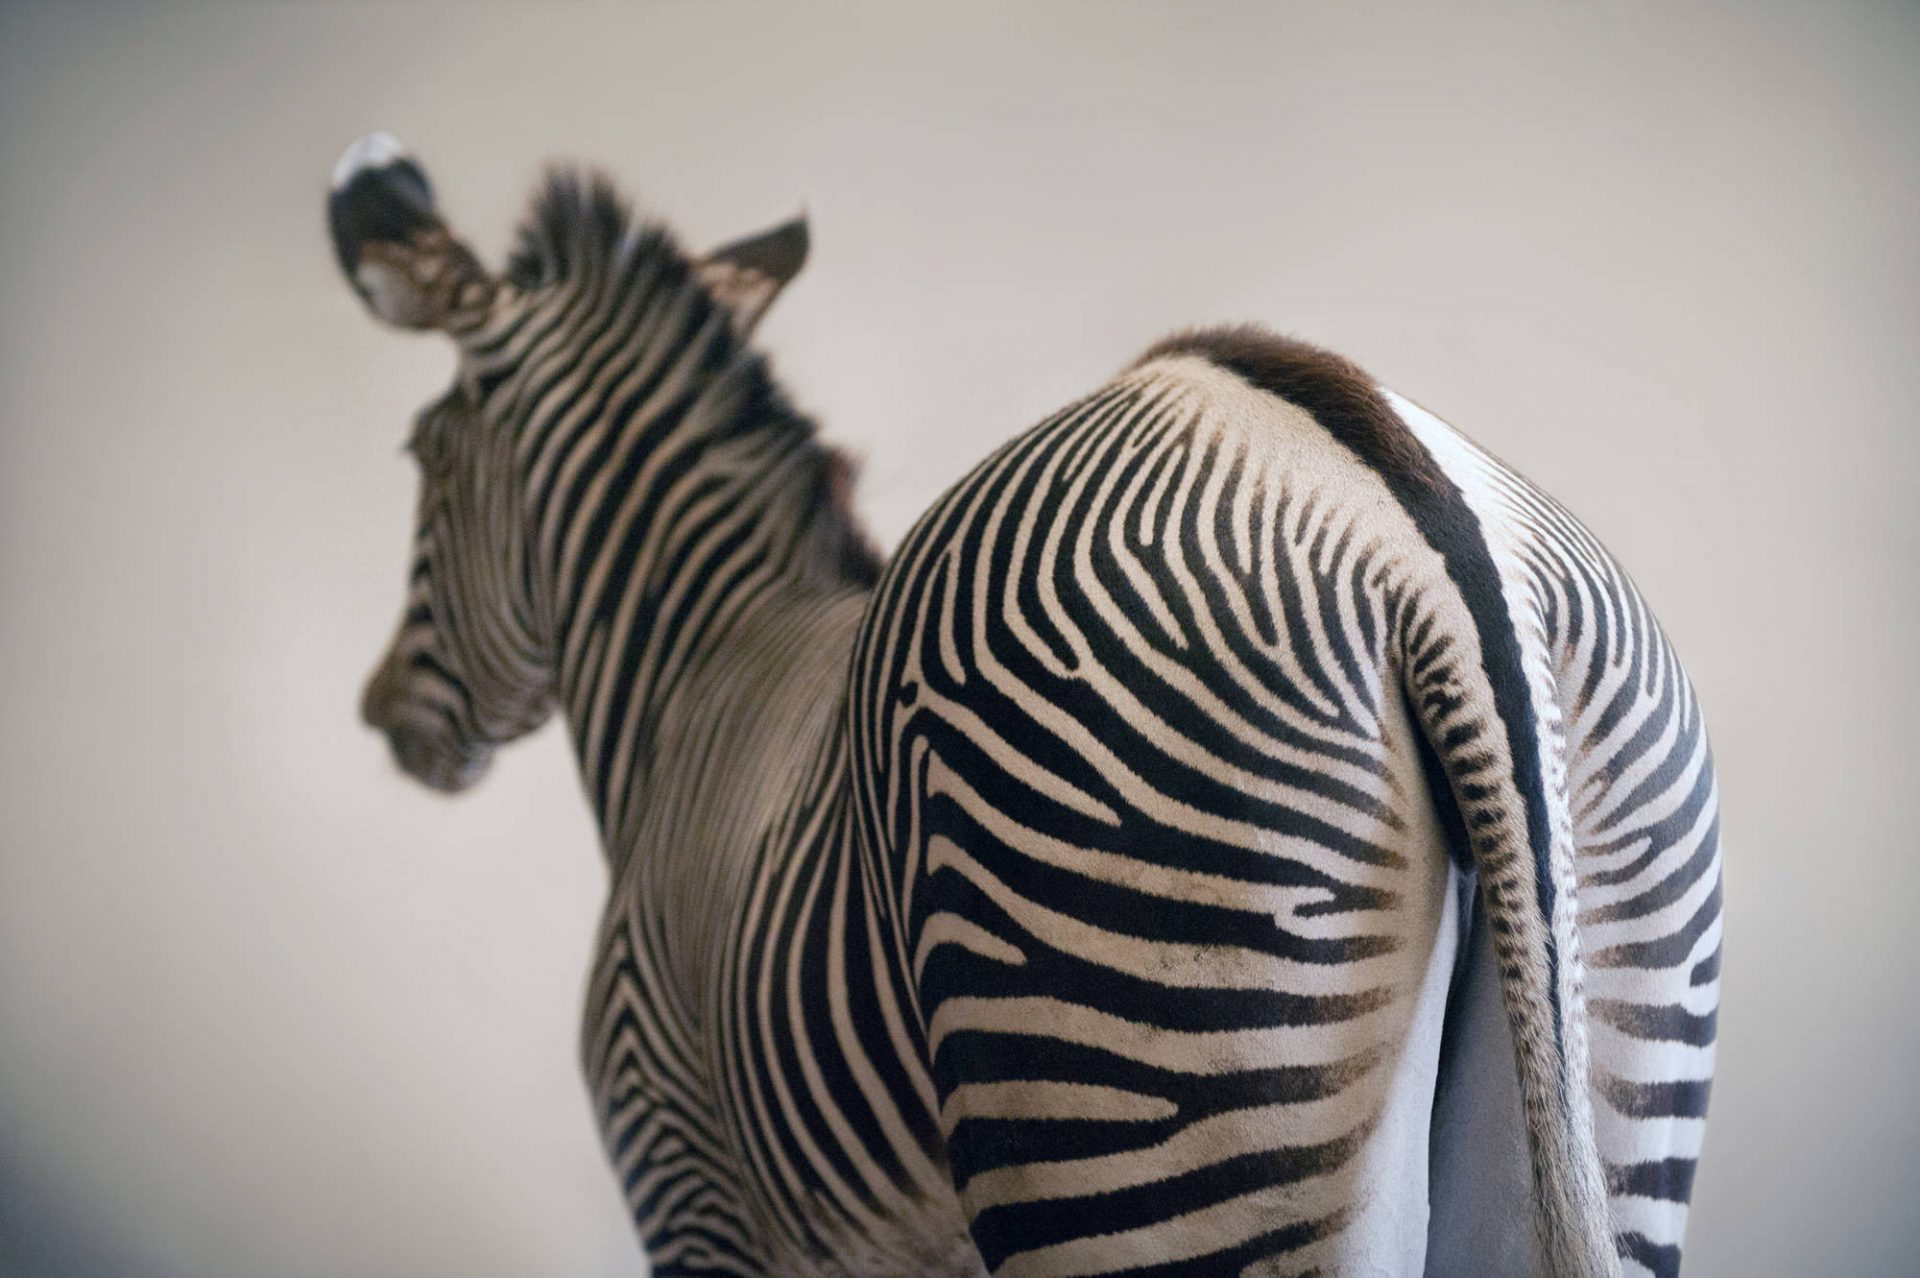 An endangered (IUCN) and federally threatened Grevy's zebra (Equus grevyi) at the Lee G. Simmons Conservation Park and Wildlife Safari near Ashland, Nebraska.